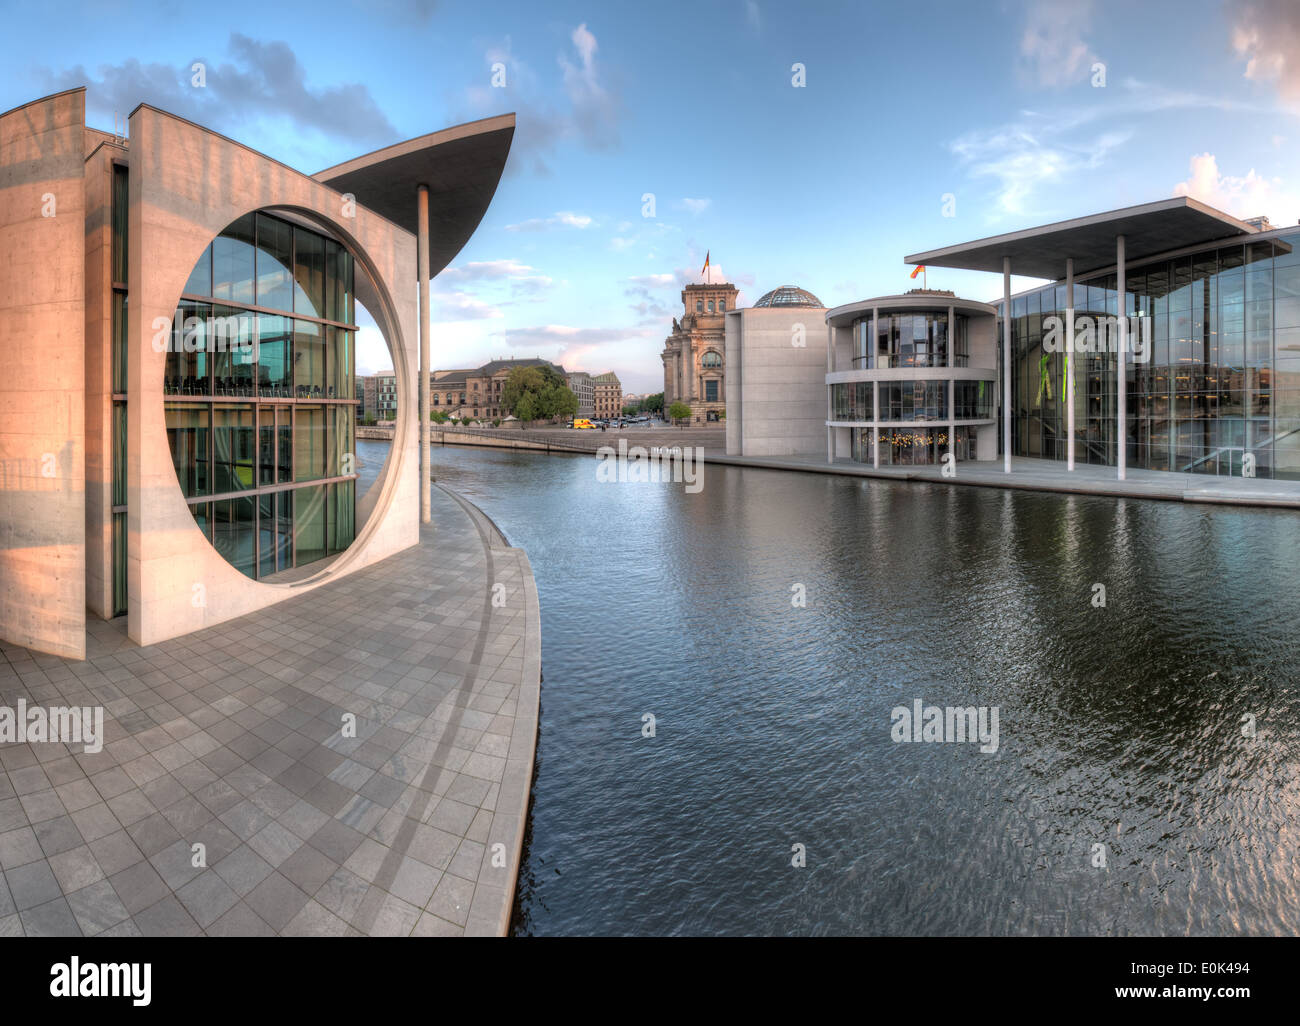 The government building district in Berlin Mitte, the capital of Germany, with the Bundestag behind. - Stock Image